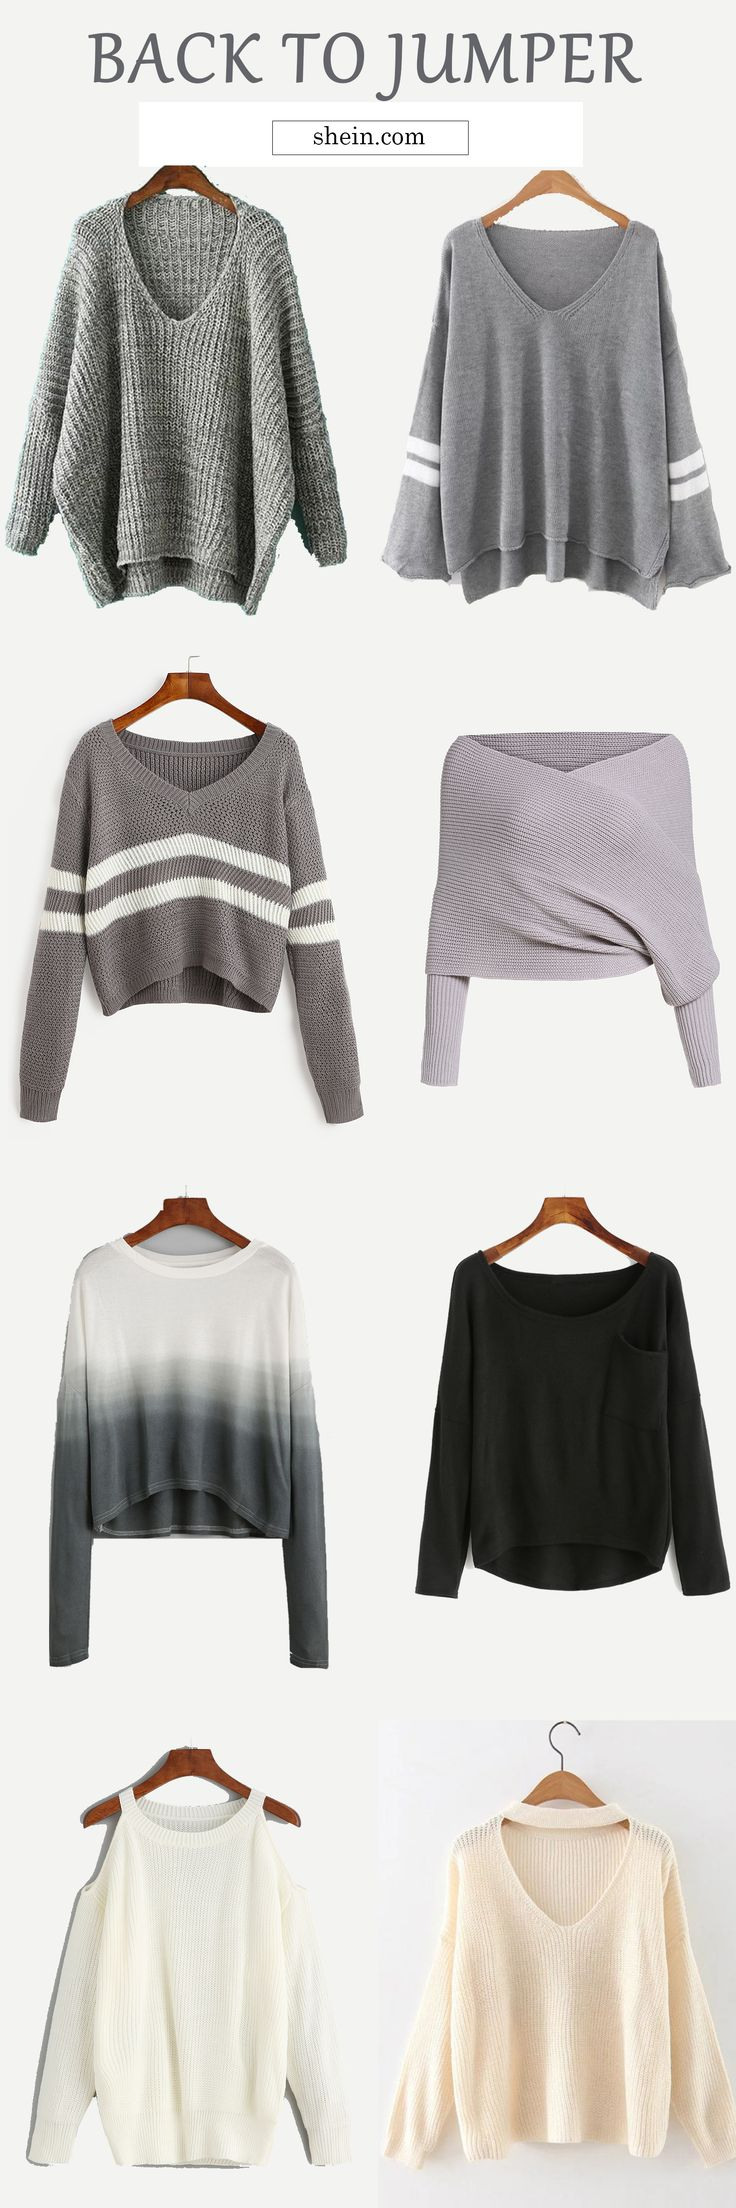 17 Best images about Sweaters on Pinterest | Crew neck, Shops and ...